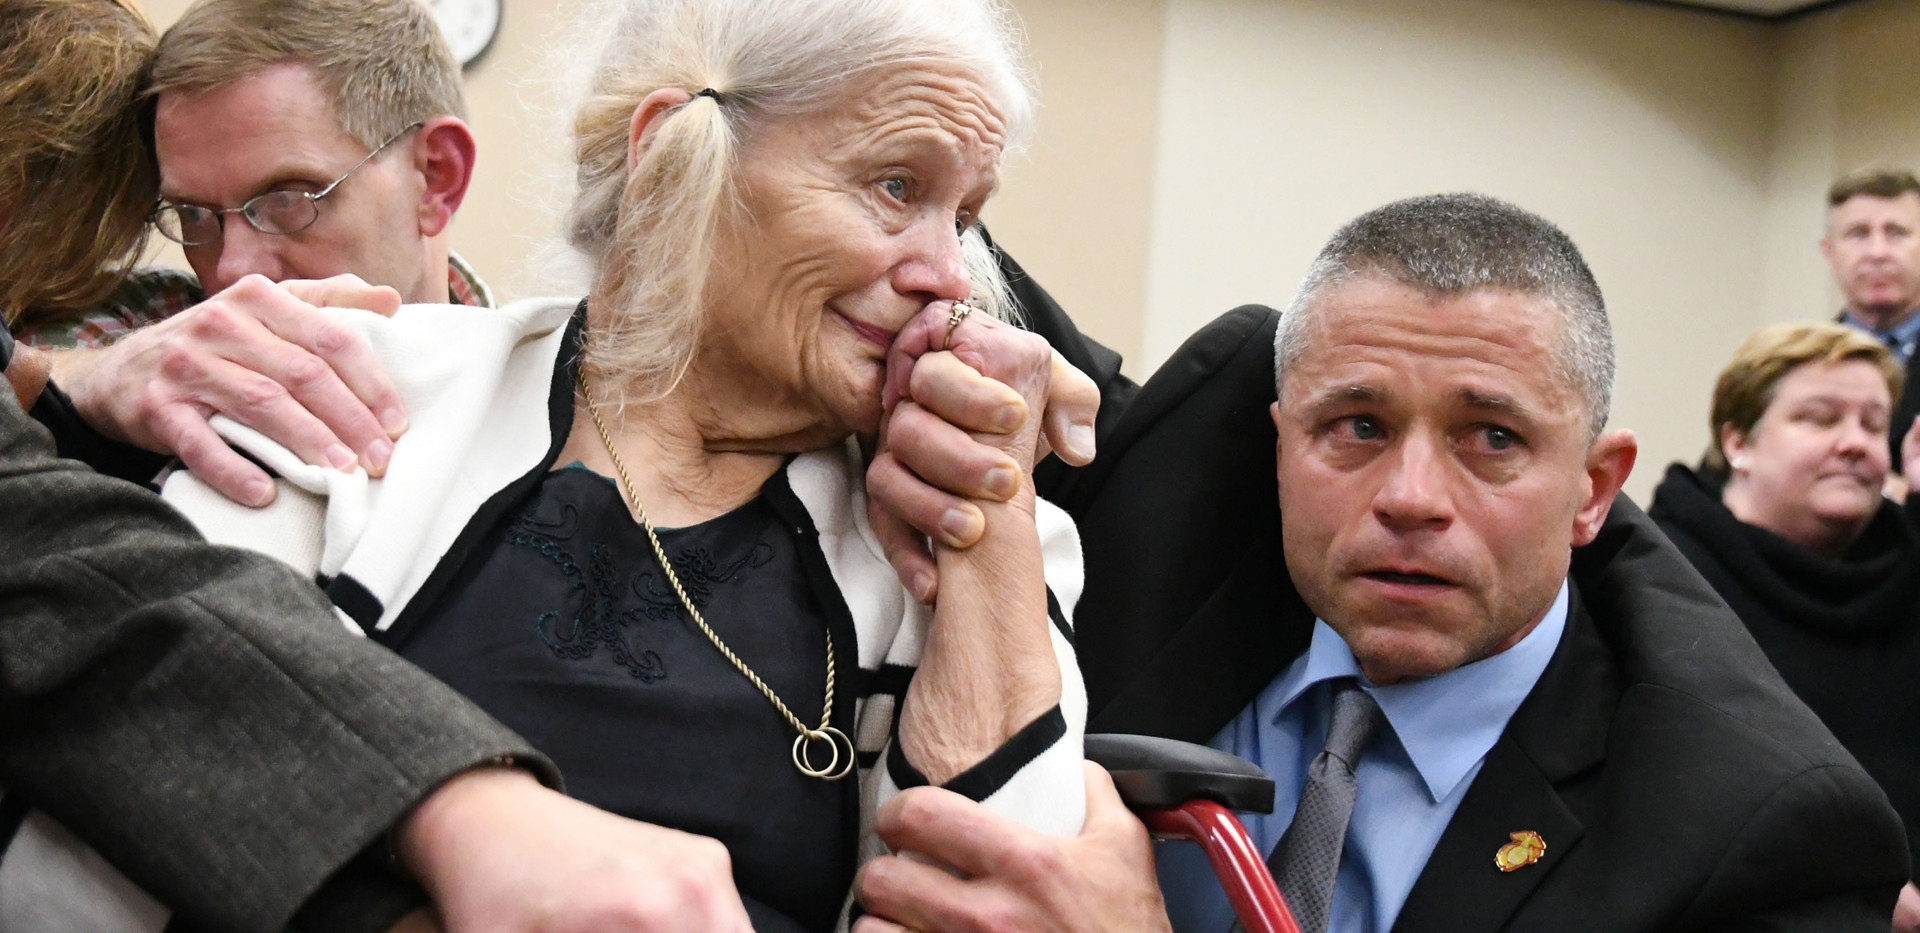 Cheryl Williams, left, mother of Mike Williams, the man who was shot and killed by his best friend 18 years ago, along side family friend Josie Visnovski, cry tears of joy for a the guilty verdicts in the trial against Denise Williams, Mike's former wife, Friday, Dec. 14, 2018.